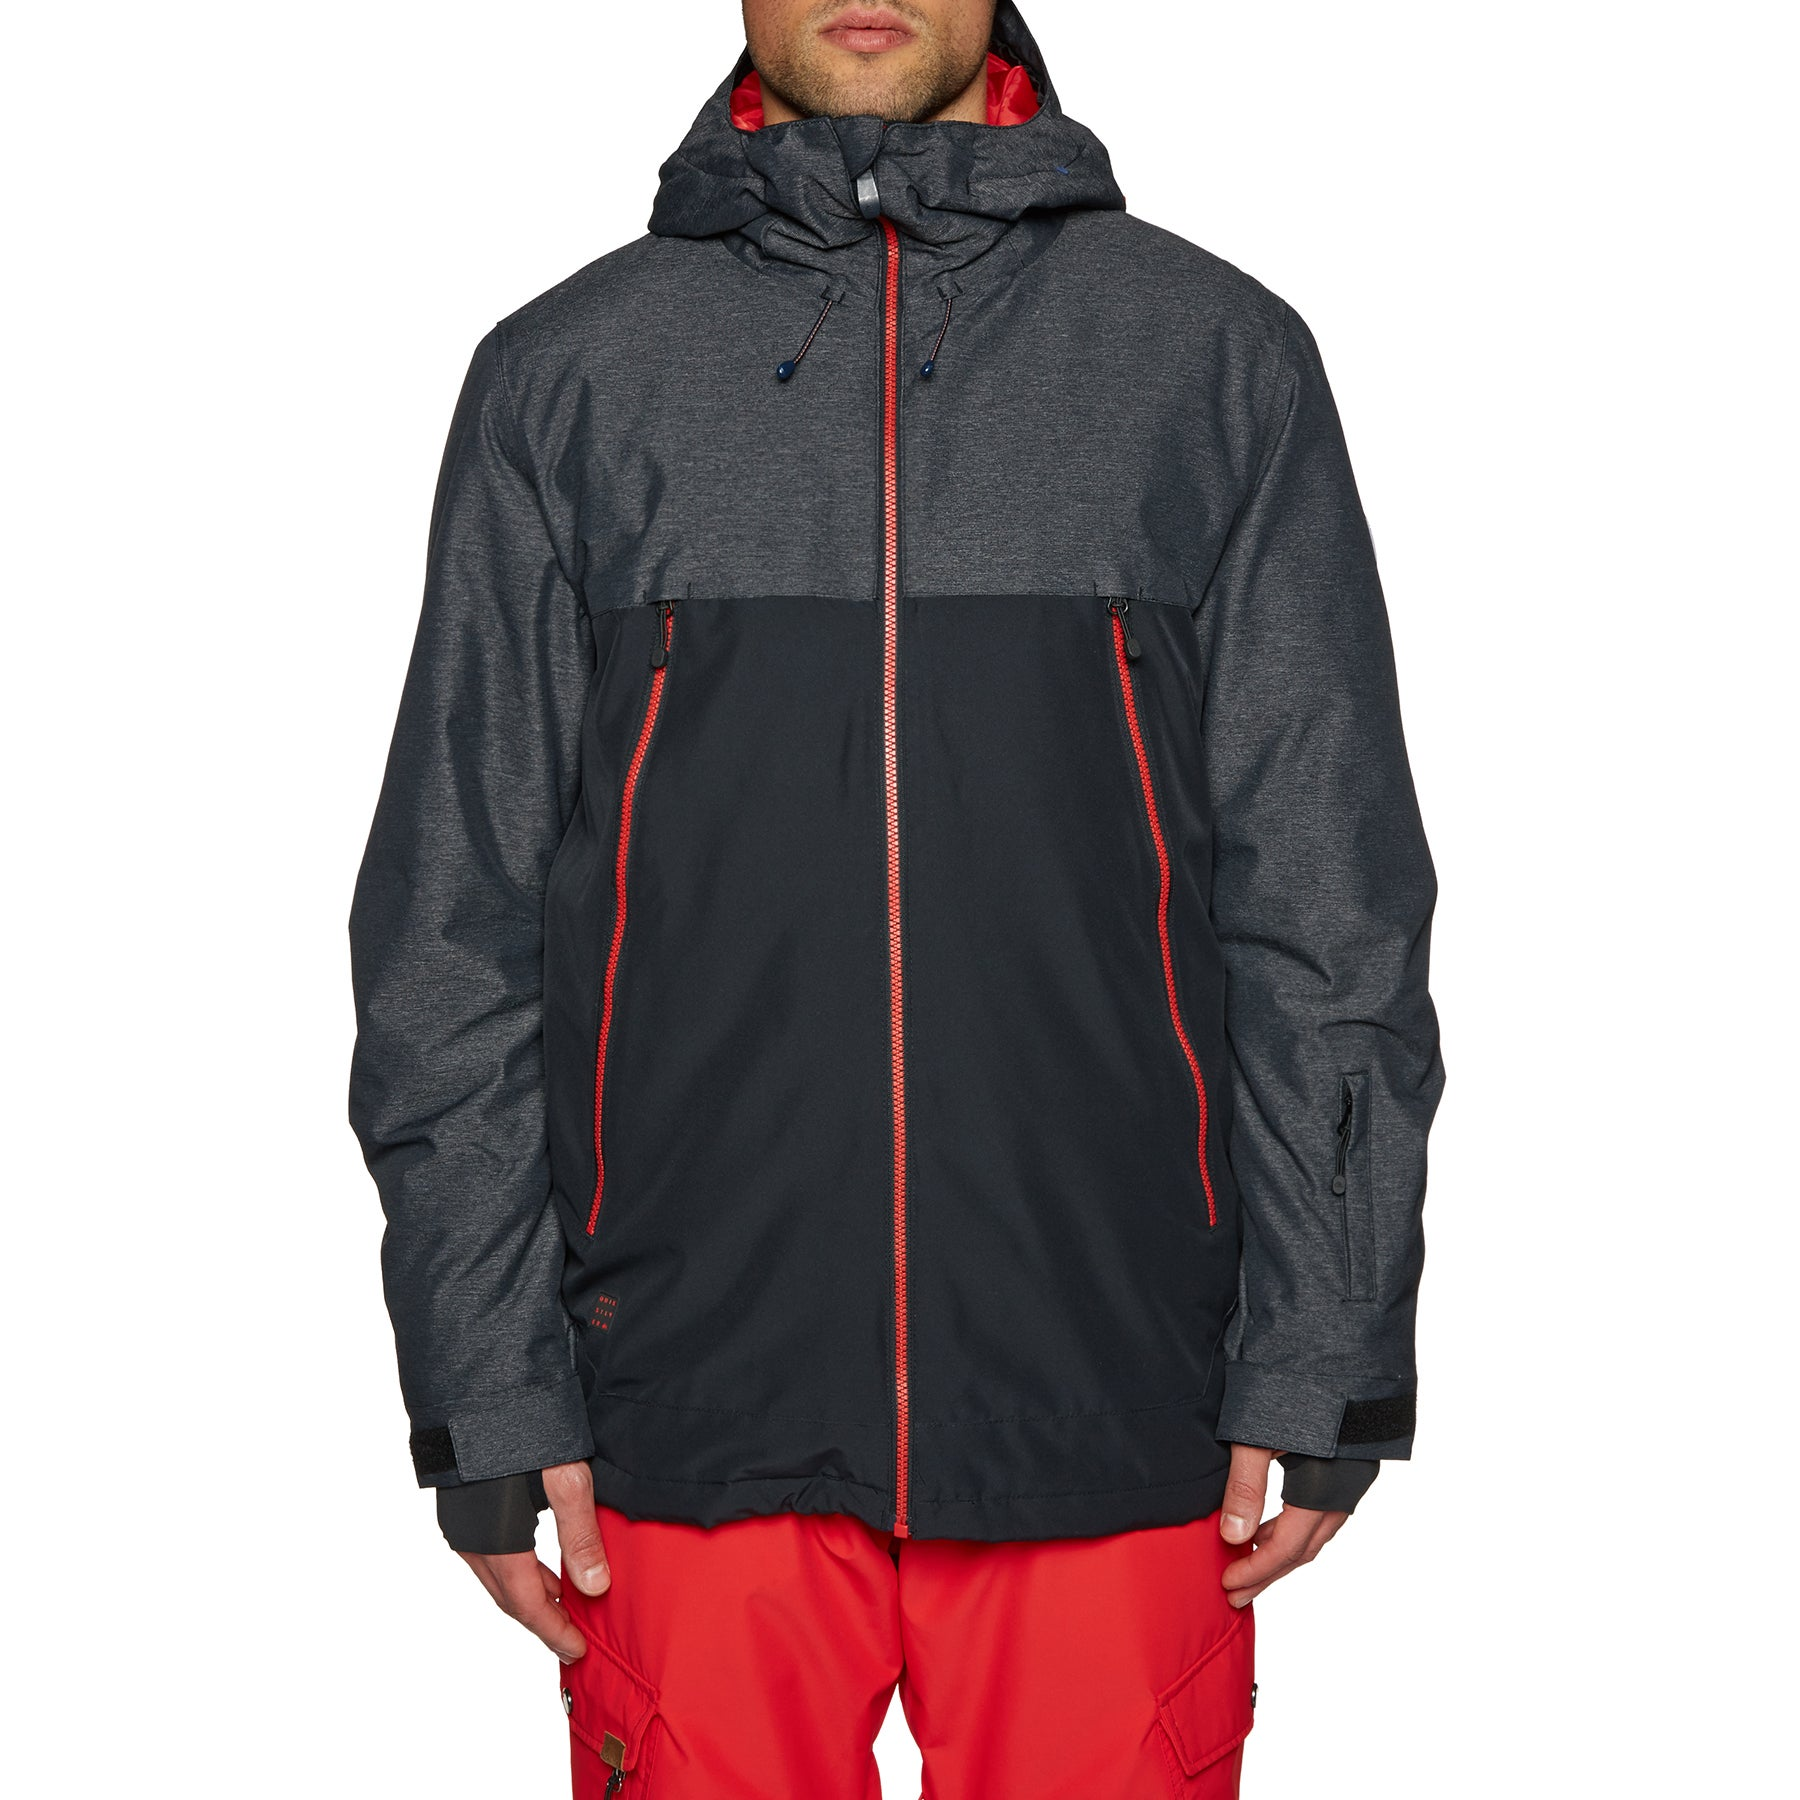 757782b66b4 Quiksilver Mens Sierra Snow Jacket available from Surfdome